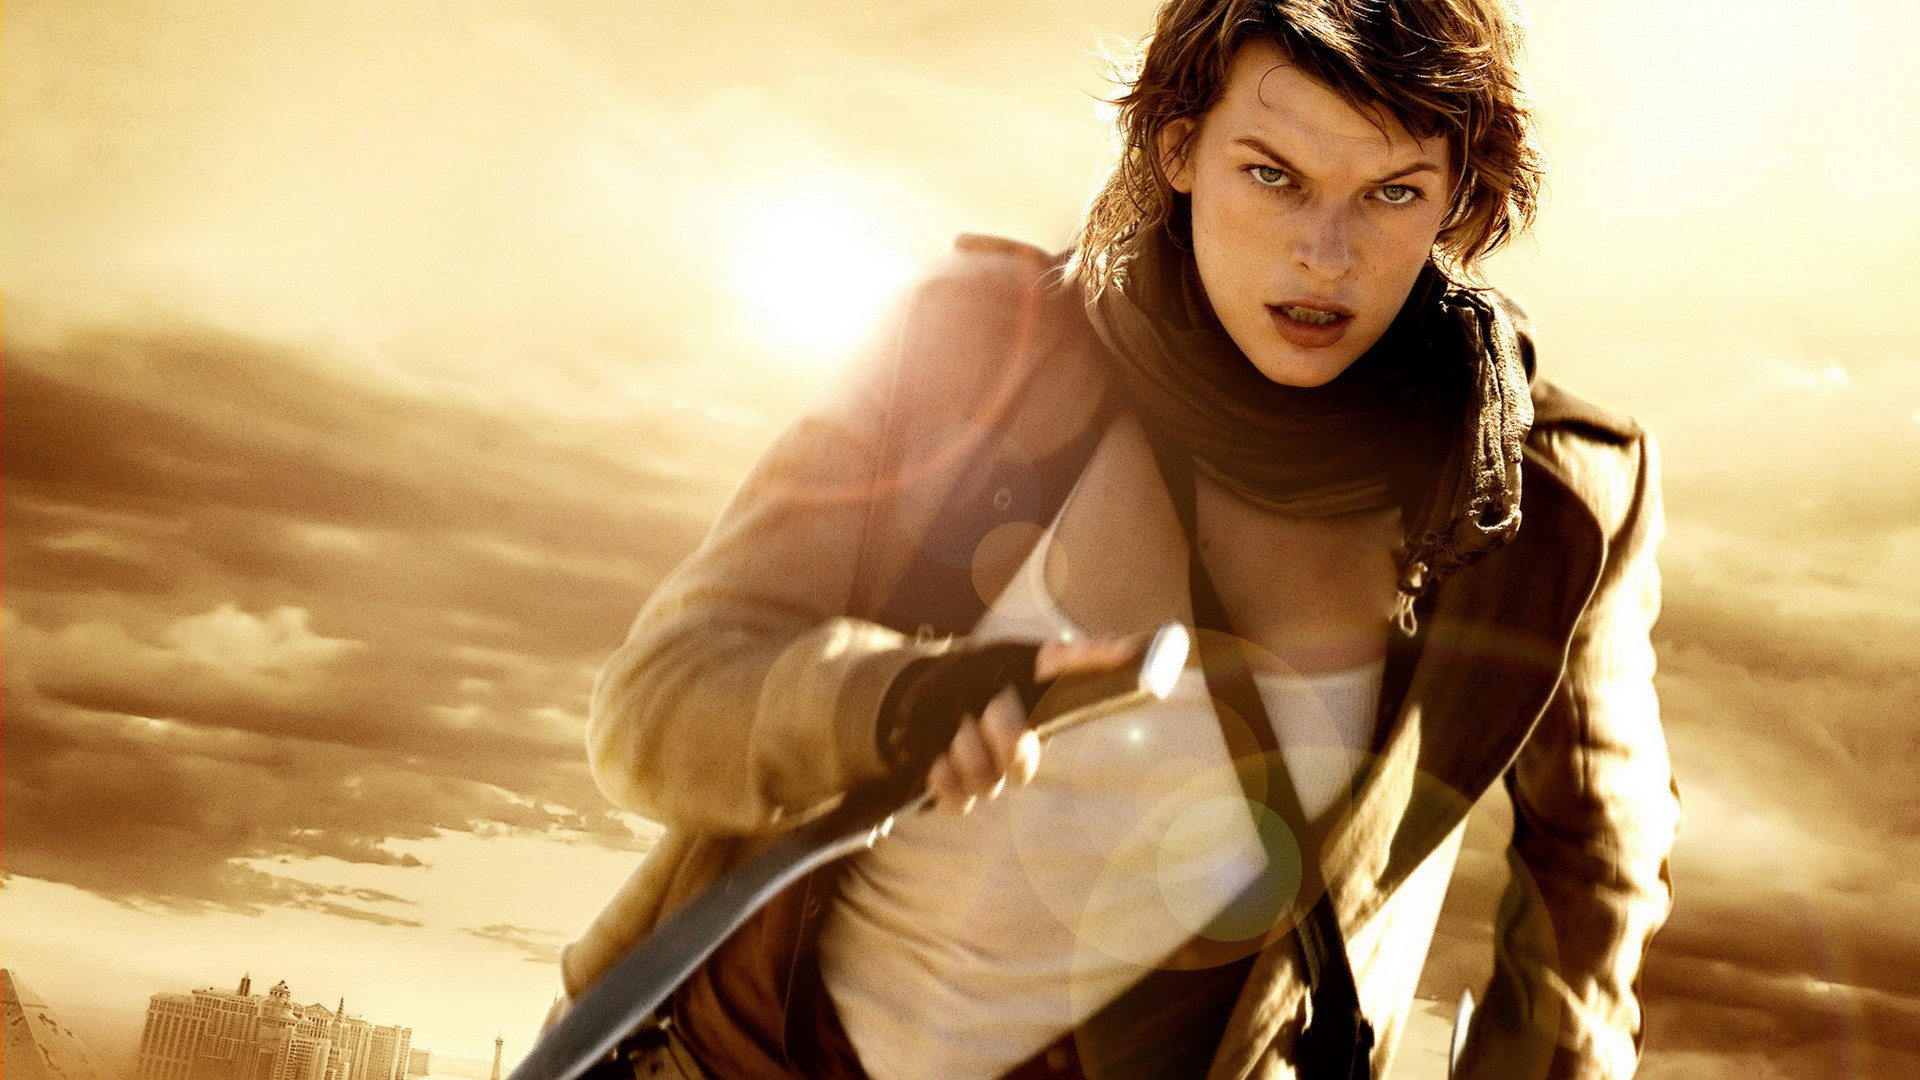 Resident Evil Extinction Wallpapers Pictures Images